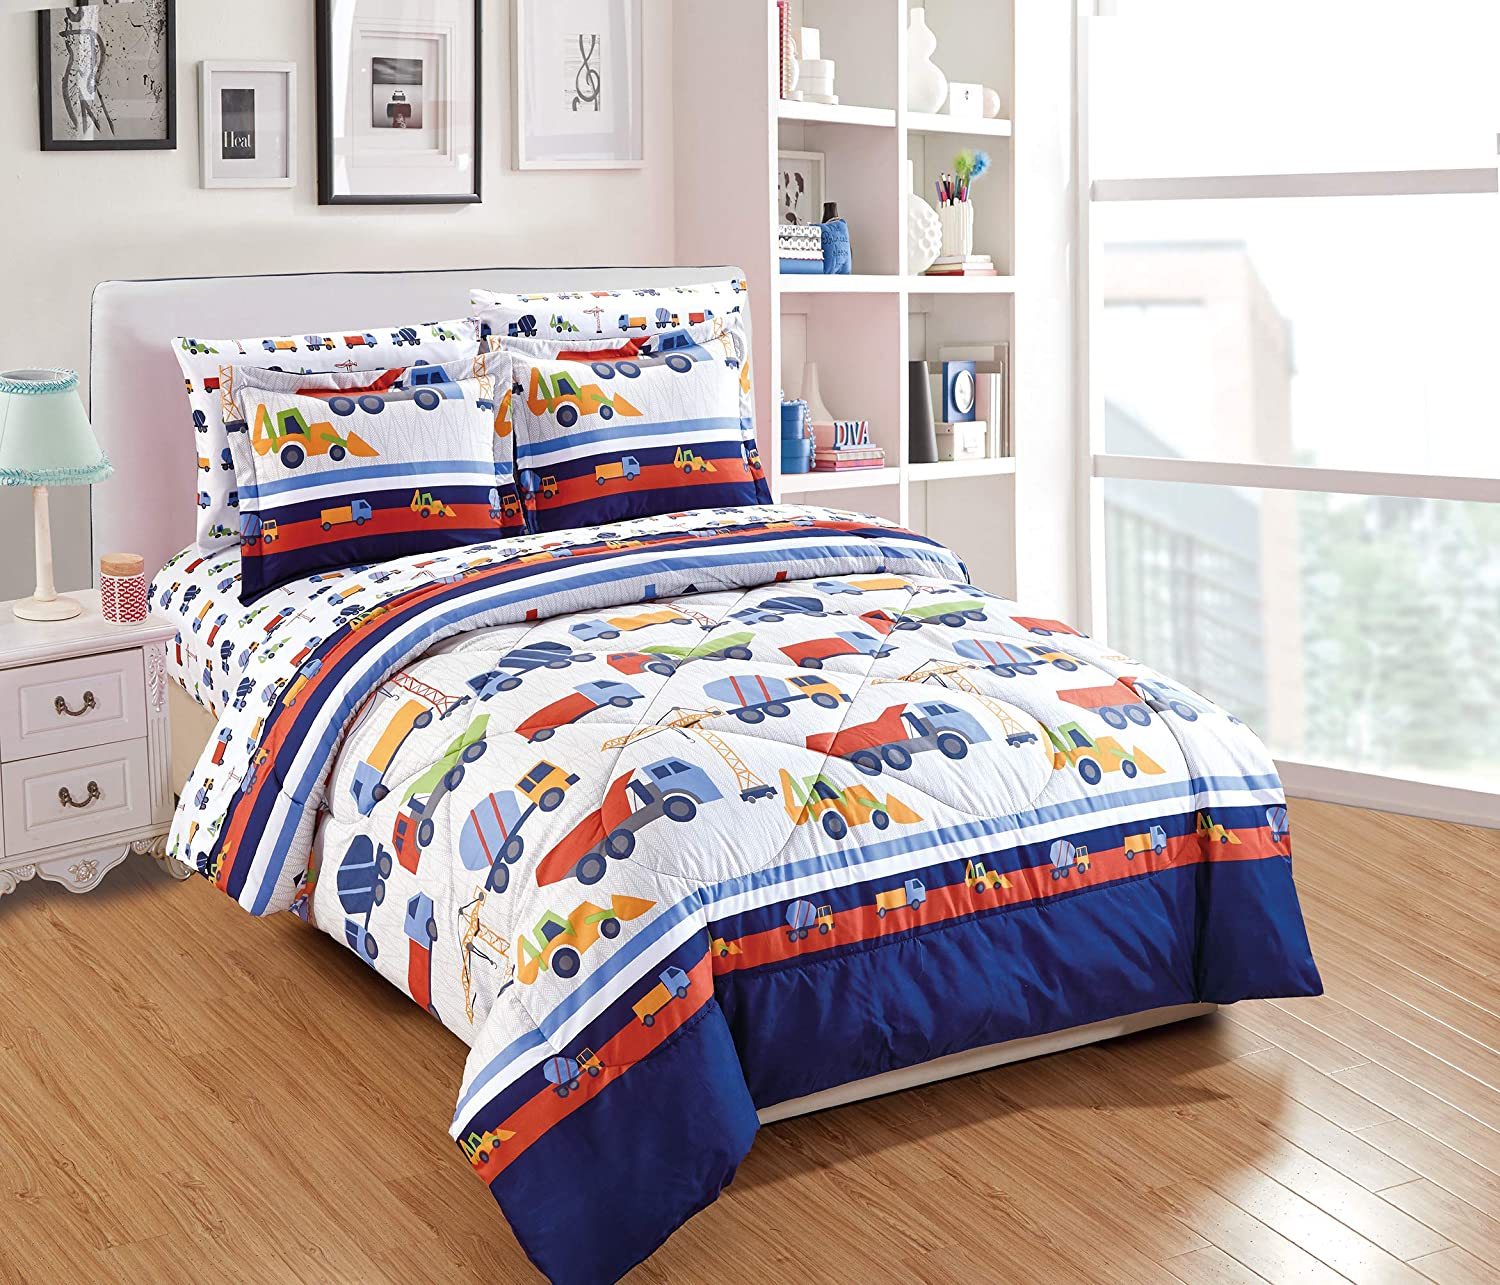 Linen Plus Queen Size 7pc Comforter Set for Kids Trucks Construction Blue Red Green Yellow White New